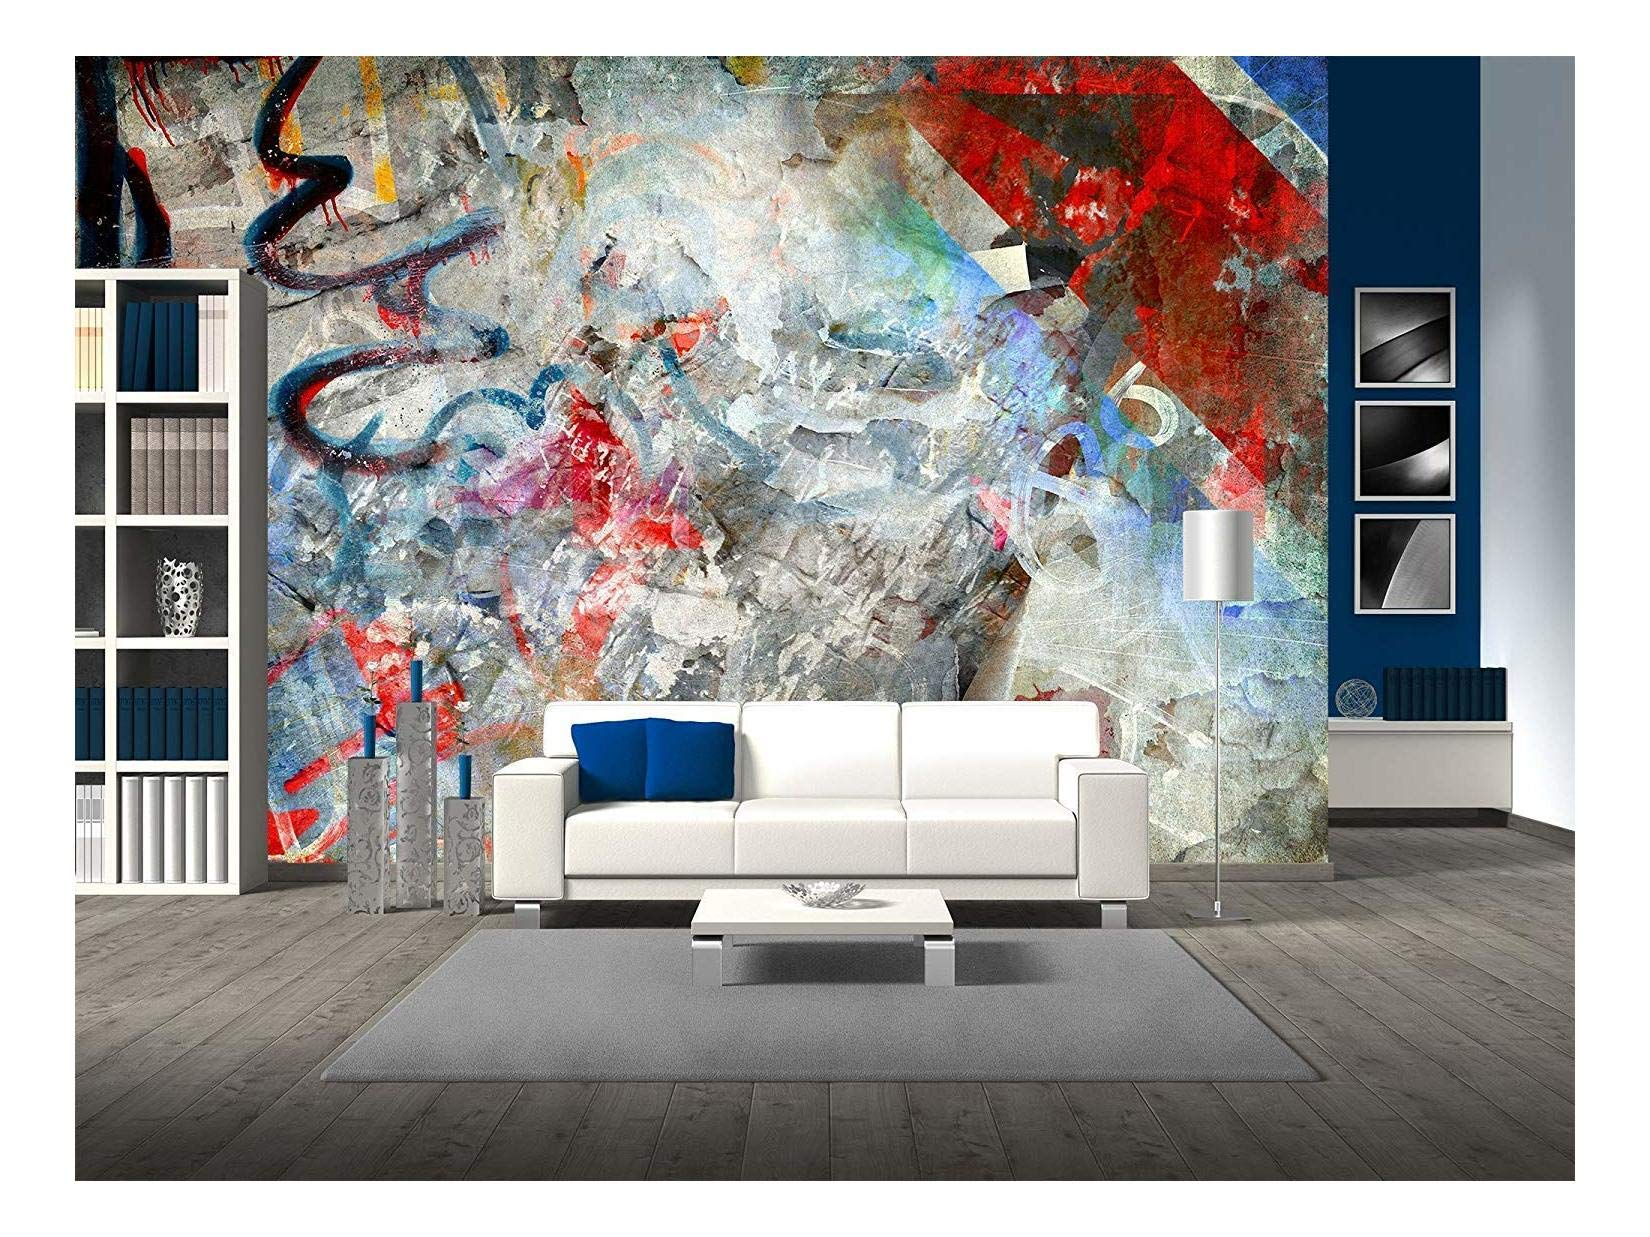 wall26 - Graffiti Background, Grunge Illustration - Removable Wall Mural | Self-Adhesive Large Wallpaper - 100x144 inches by wall26 (Image #1)